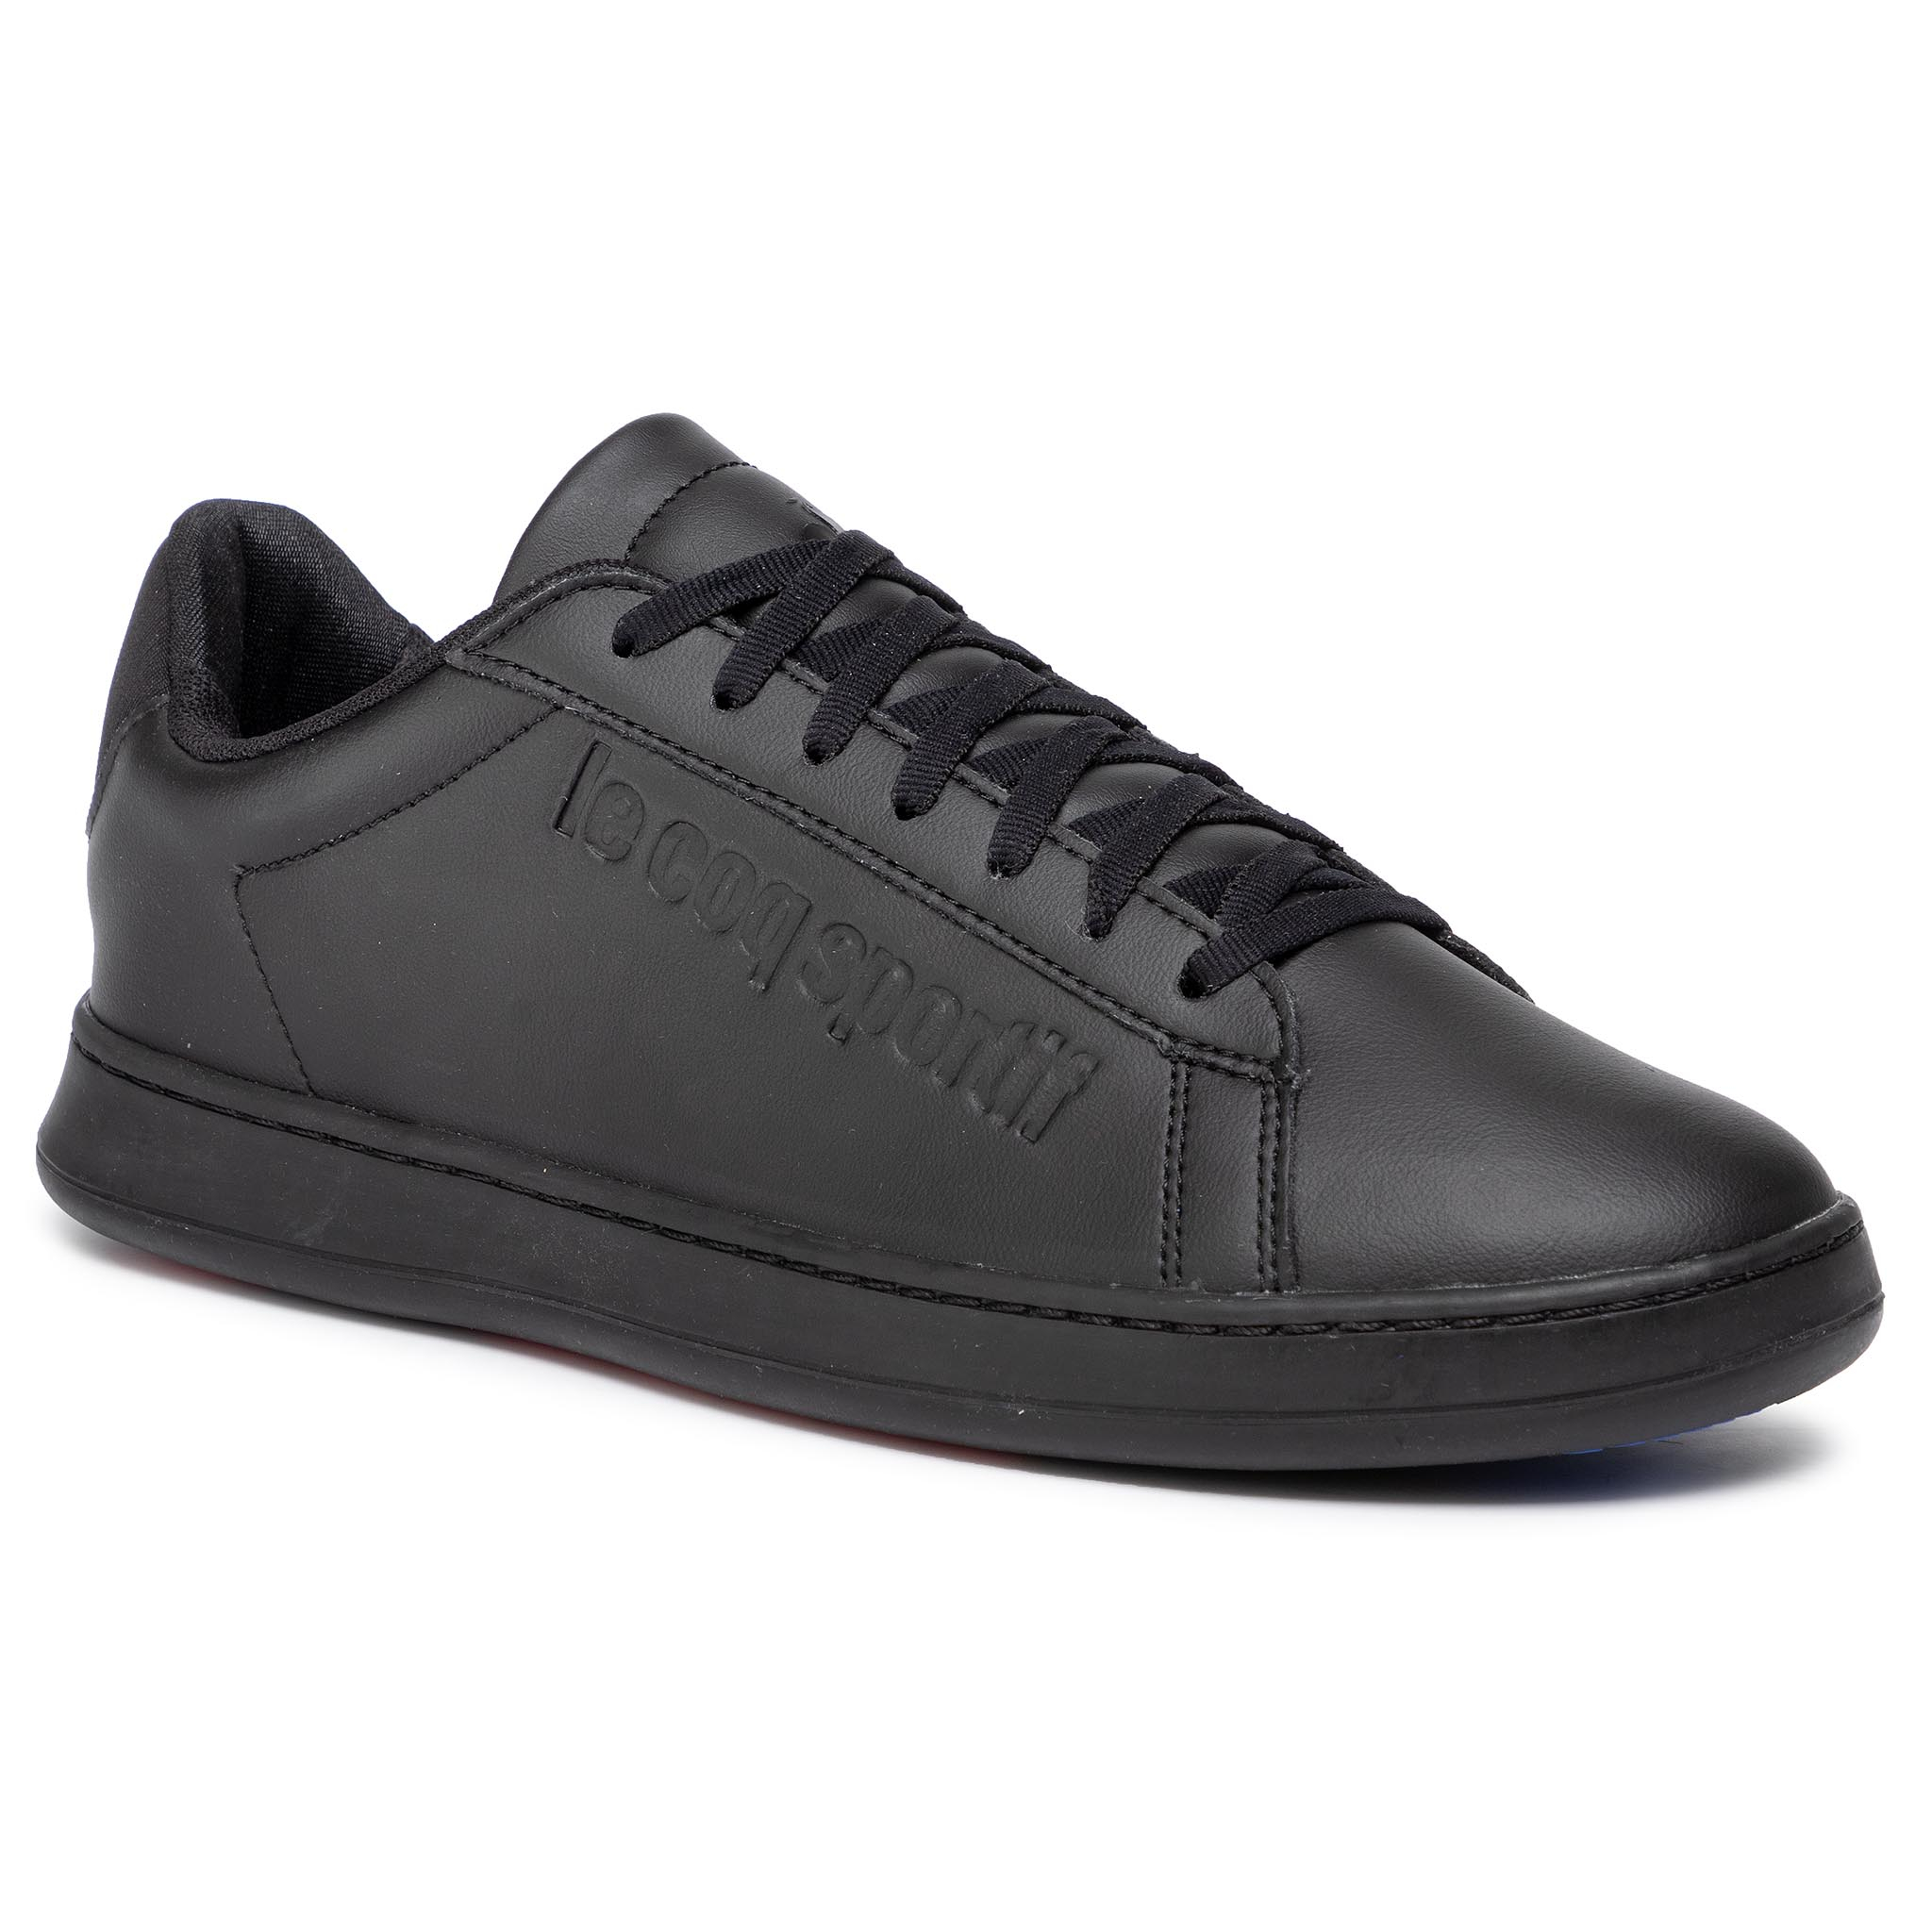 Teniși LE COQ SPORTIF - Break Tricolore 1920081 Triple Black